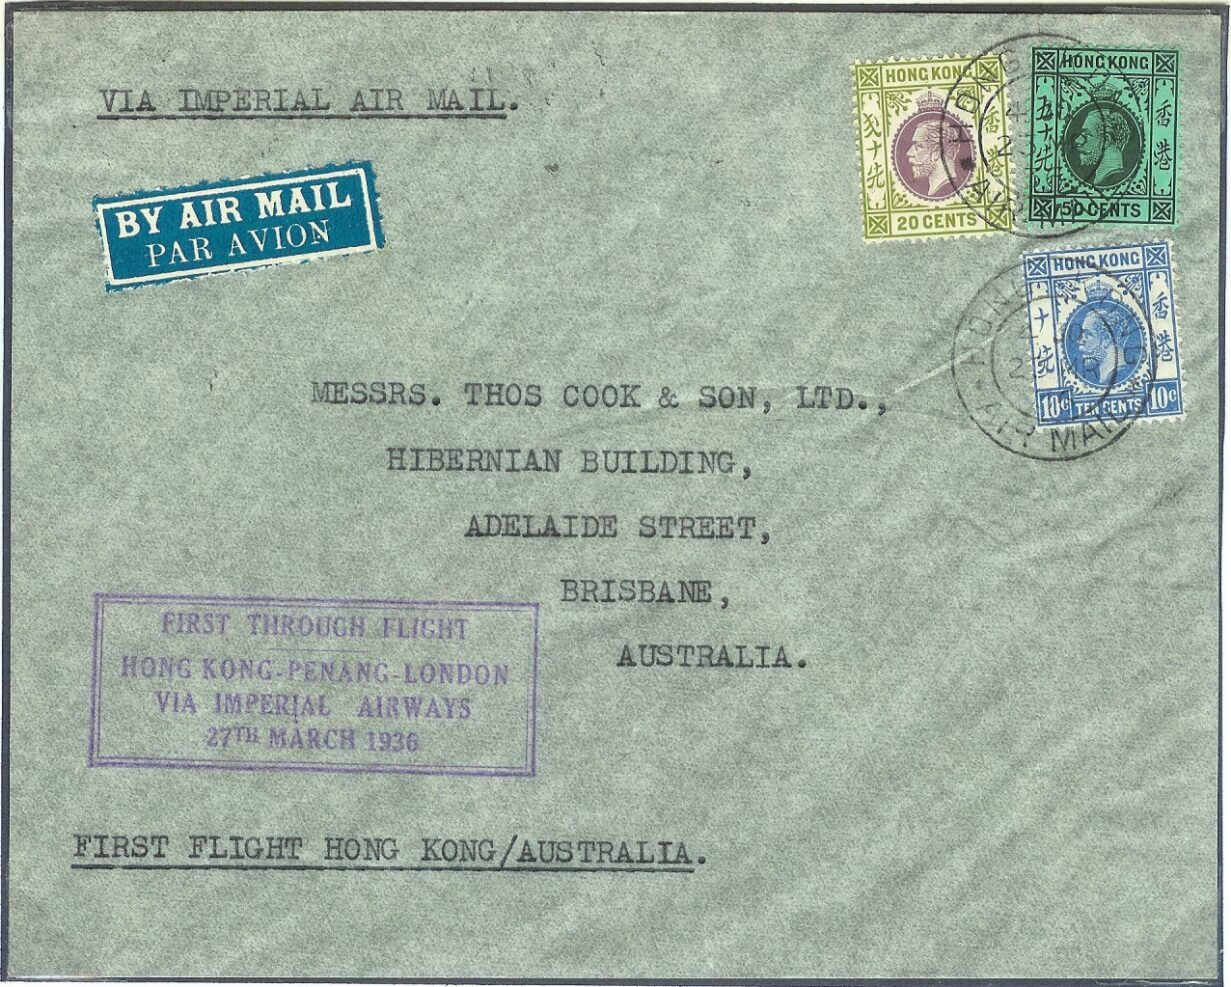 HKSC Imperial Airways Fig 2